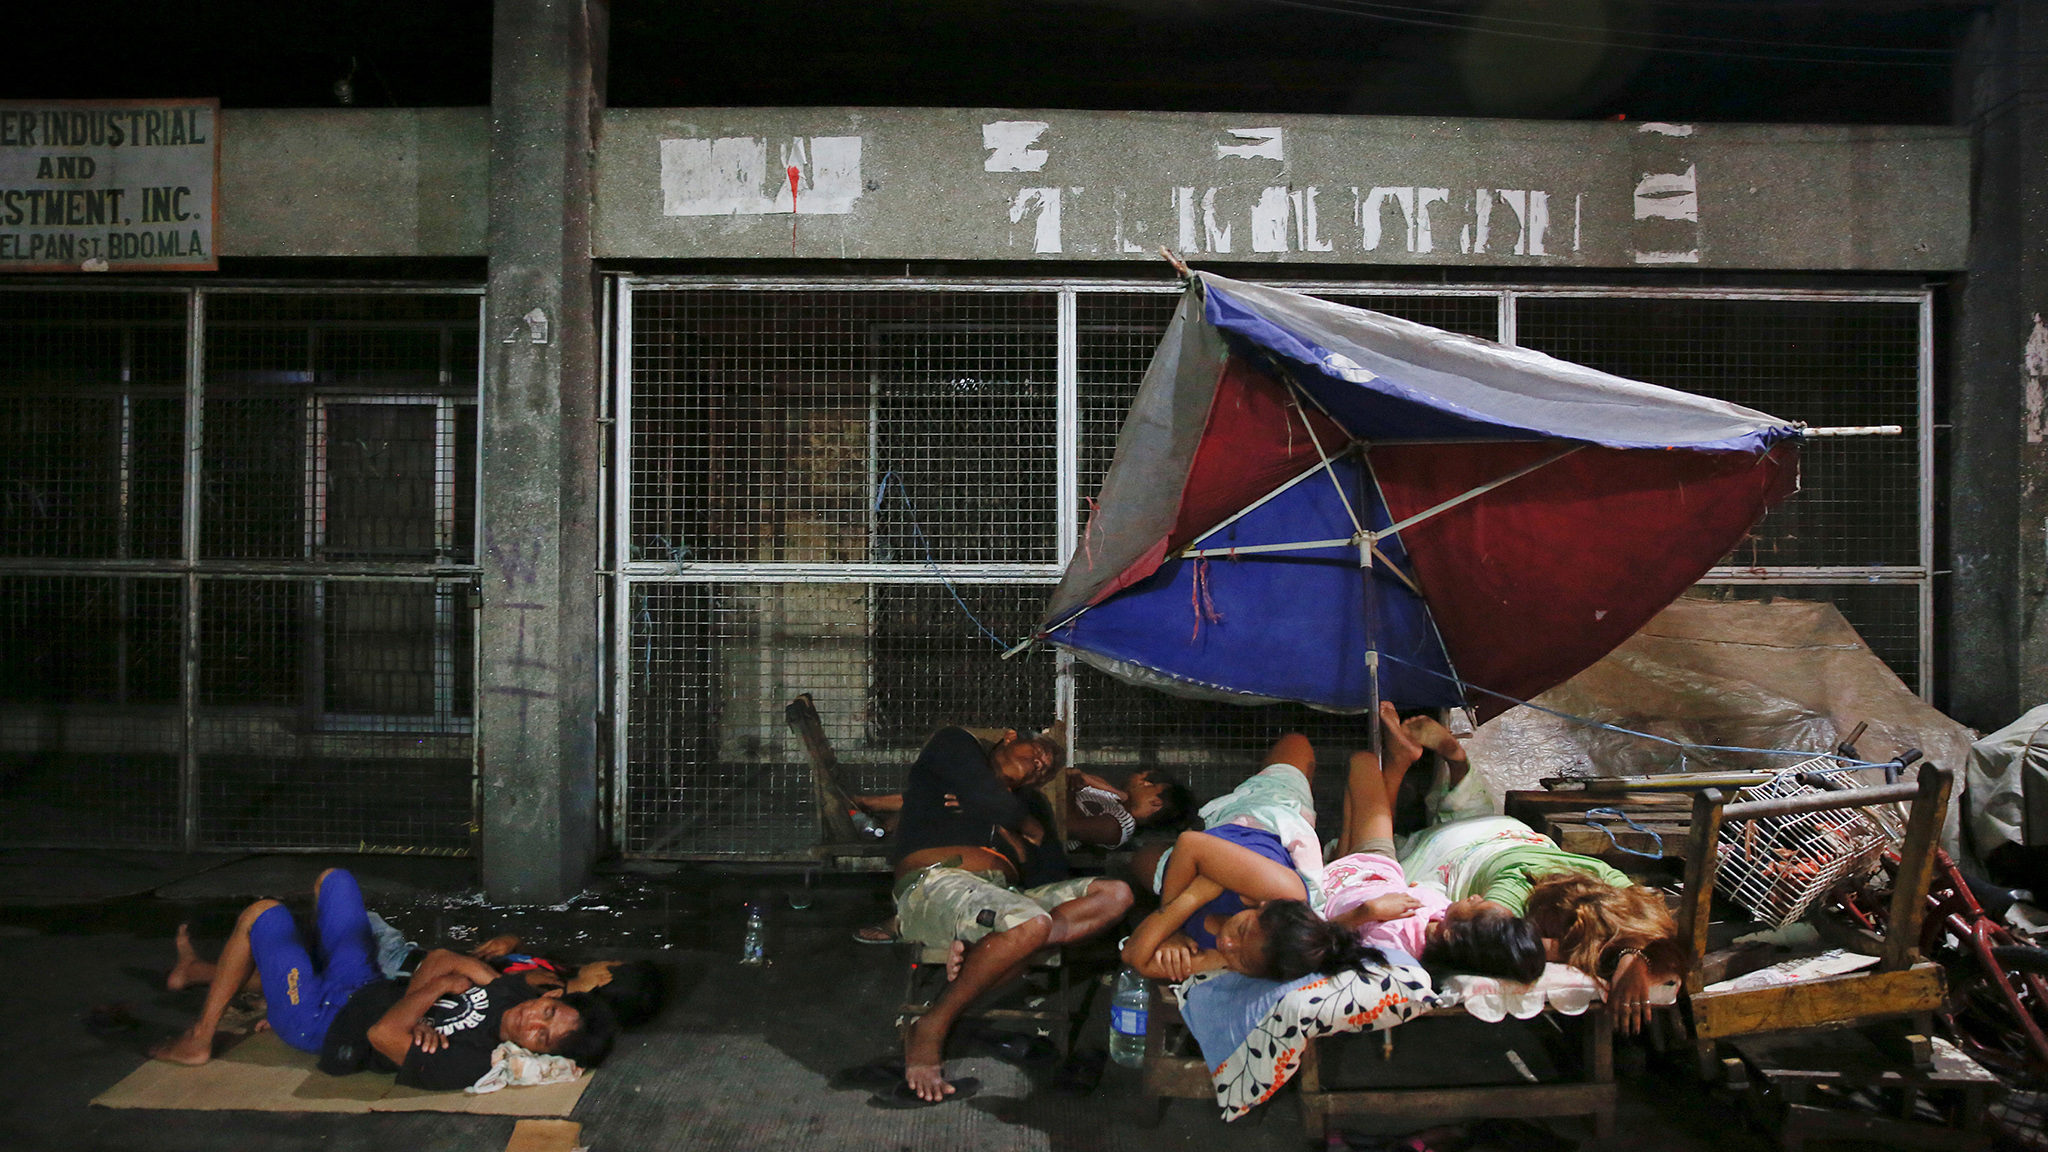 People sleep in open air, on a street in Tondo, Manila, Philippines early October 18, 2016. Local residents from the neighbourhood in Manila's slum of Tondo in which several people were killed in drugs related operations, say there are more people sleeping outside their homes since the beginning of the country's war on drugs fearing for their safety. REUTERS/Damir Sagolj